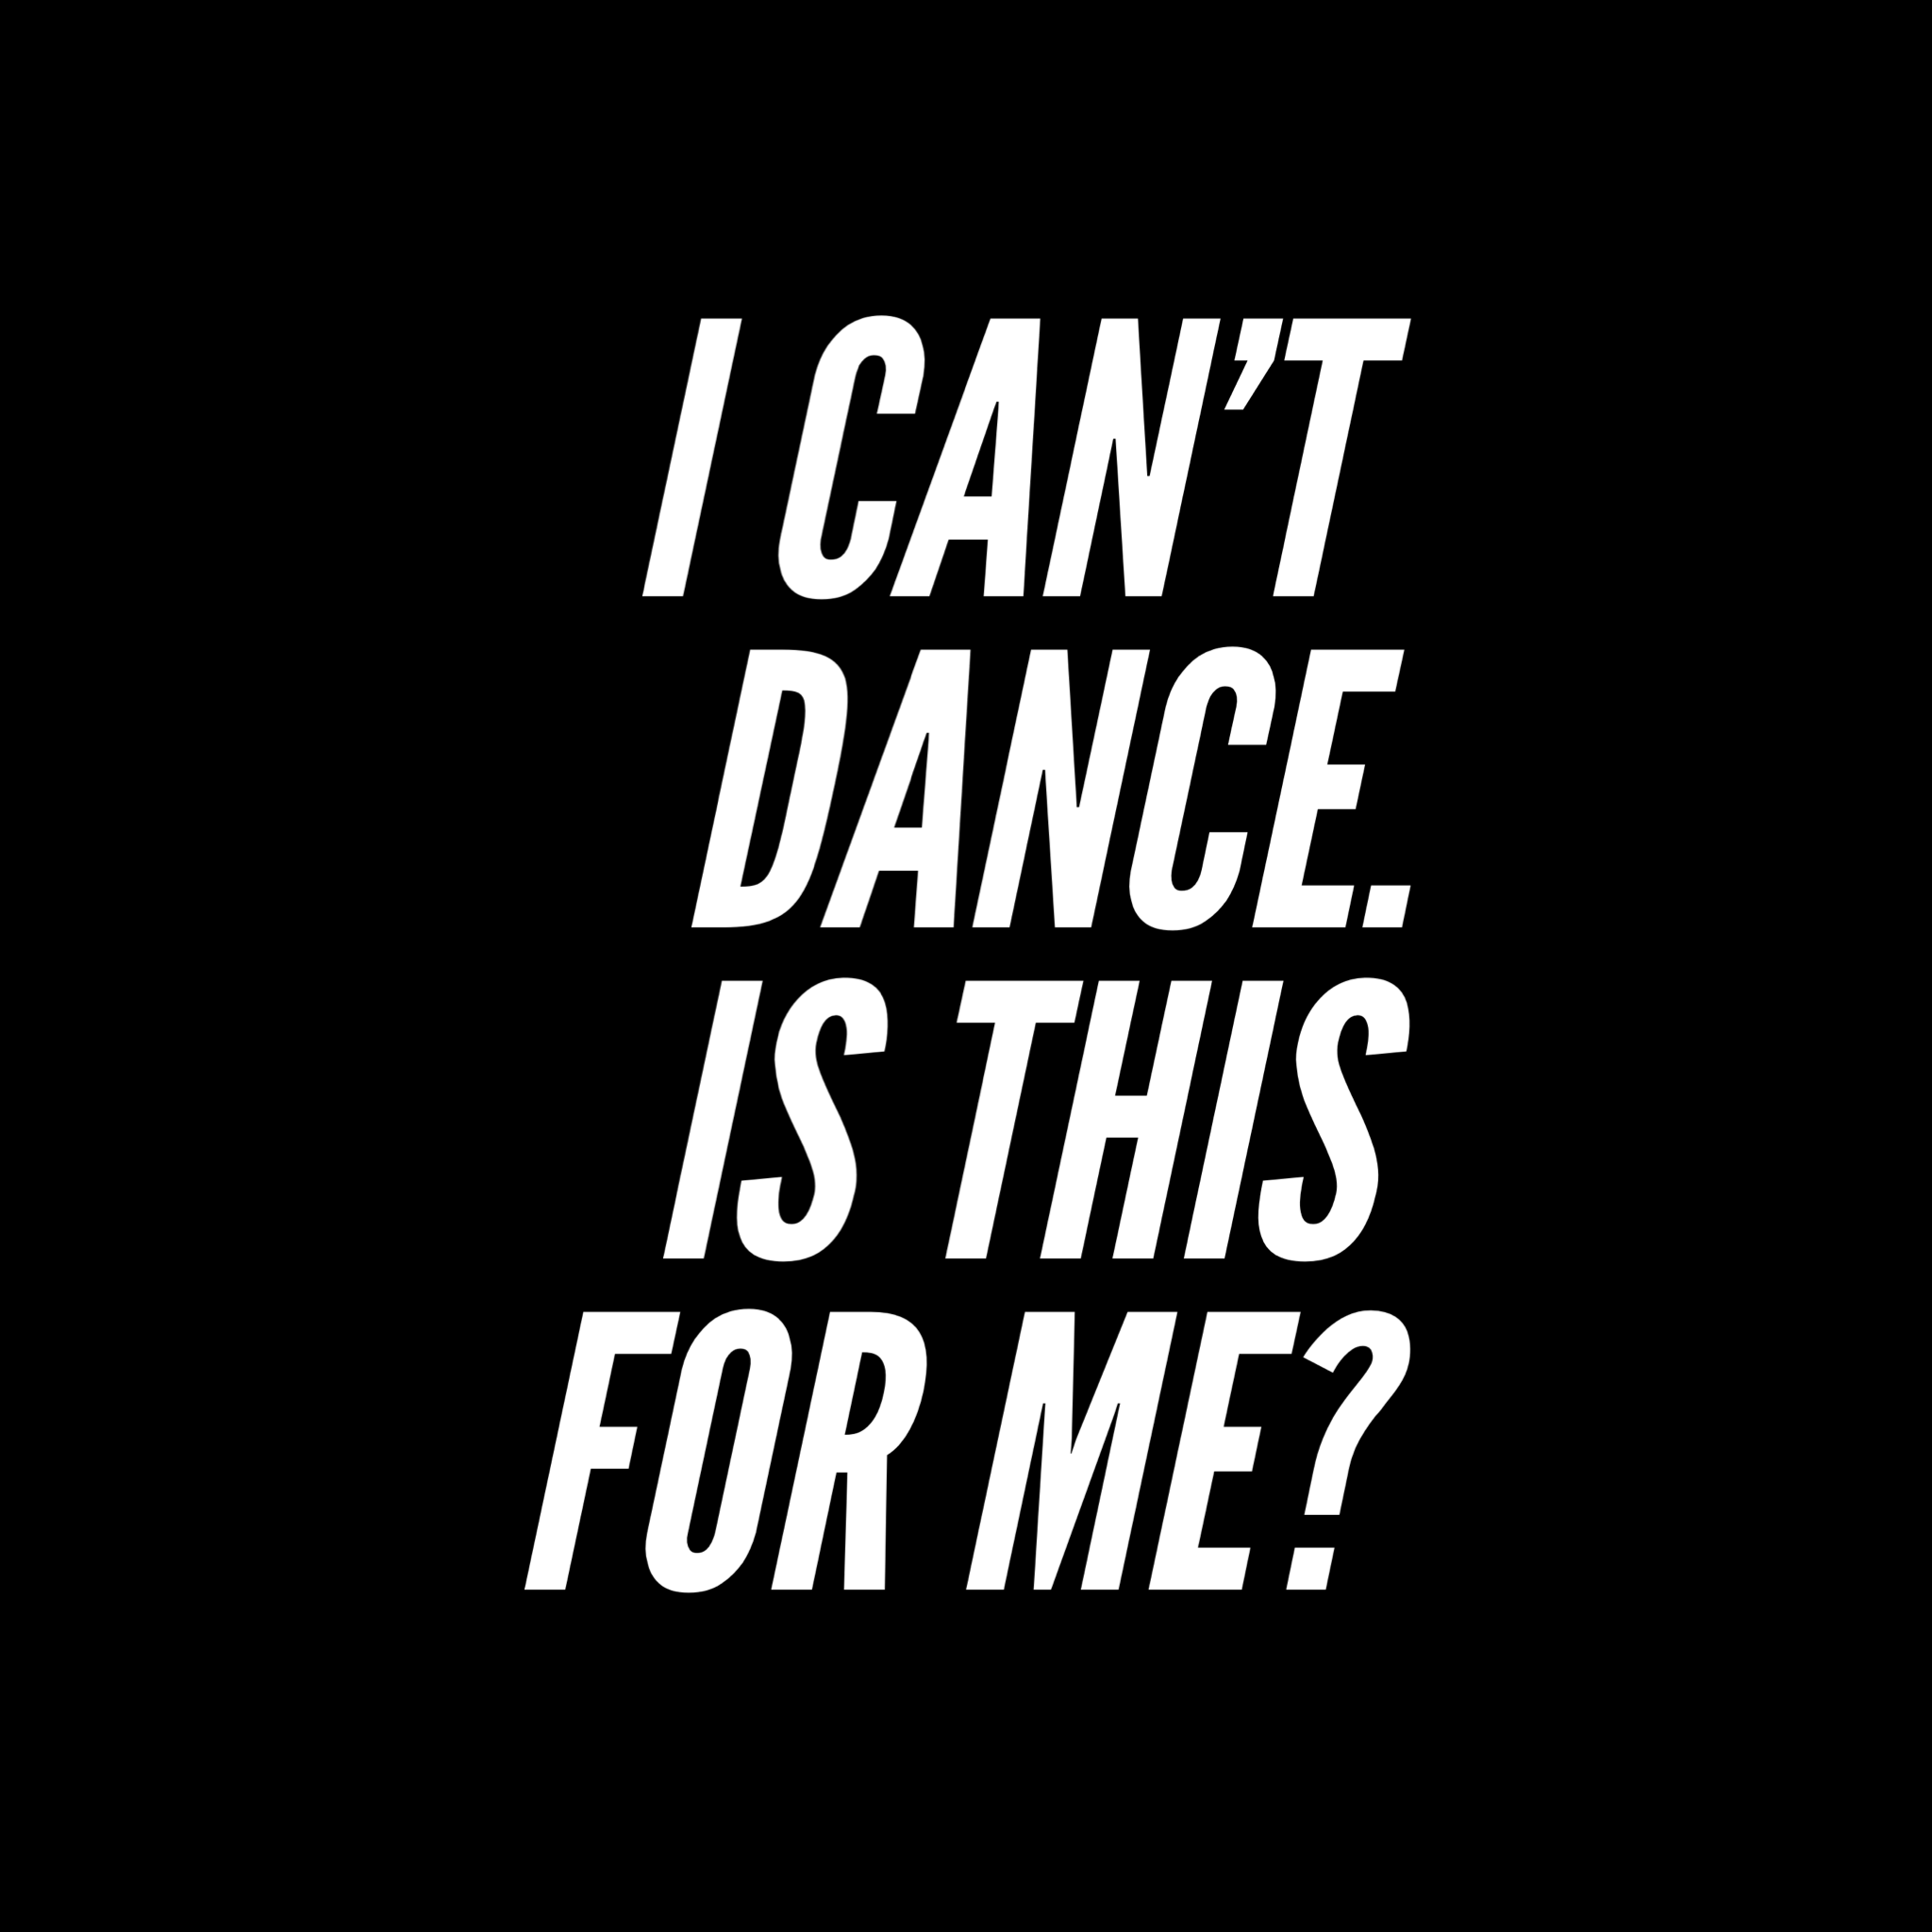 Oh, but you CAN. Everyone can dance and DMT has an unusual ability to help you discover how seriously bad ass of a dancer you actually are. DMT very quickly helps people enter their own flow state and not just enter it, but regularly enter it and ever more deeply. If you don't know what to do or how to move, no worries, I'll teach you a technique that is simple and effective to get you out of your head trip and into your movement flow. Move fast or slow, the pace is totally up to you. And for some extra comfort, no photos or videos are EVER taken at a DMT and we all agree not to watch each other or engage with each other.